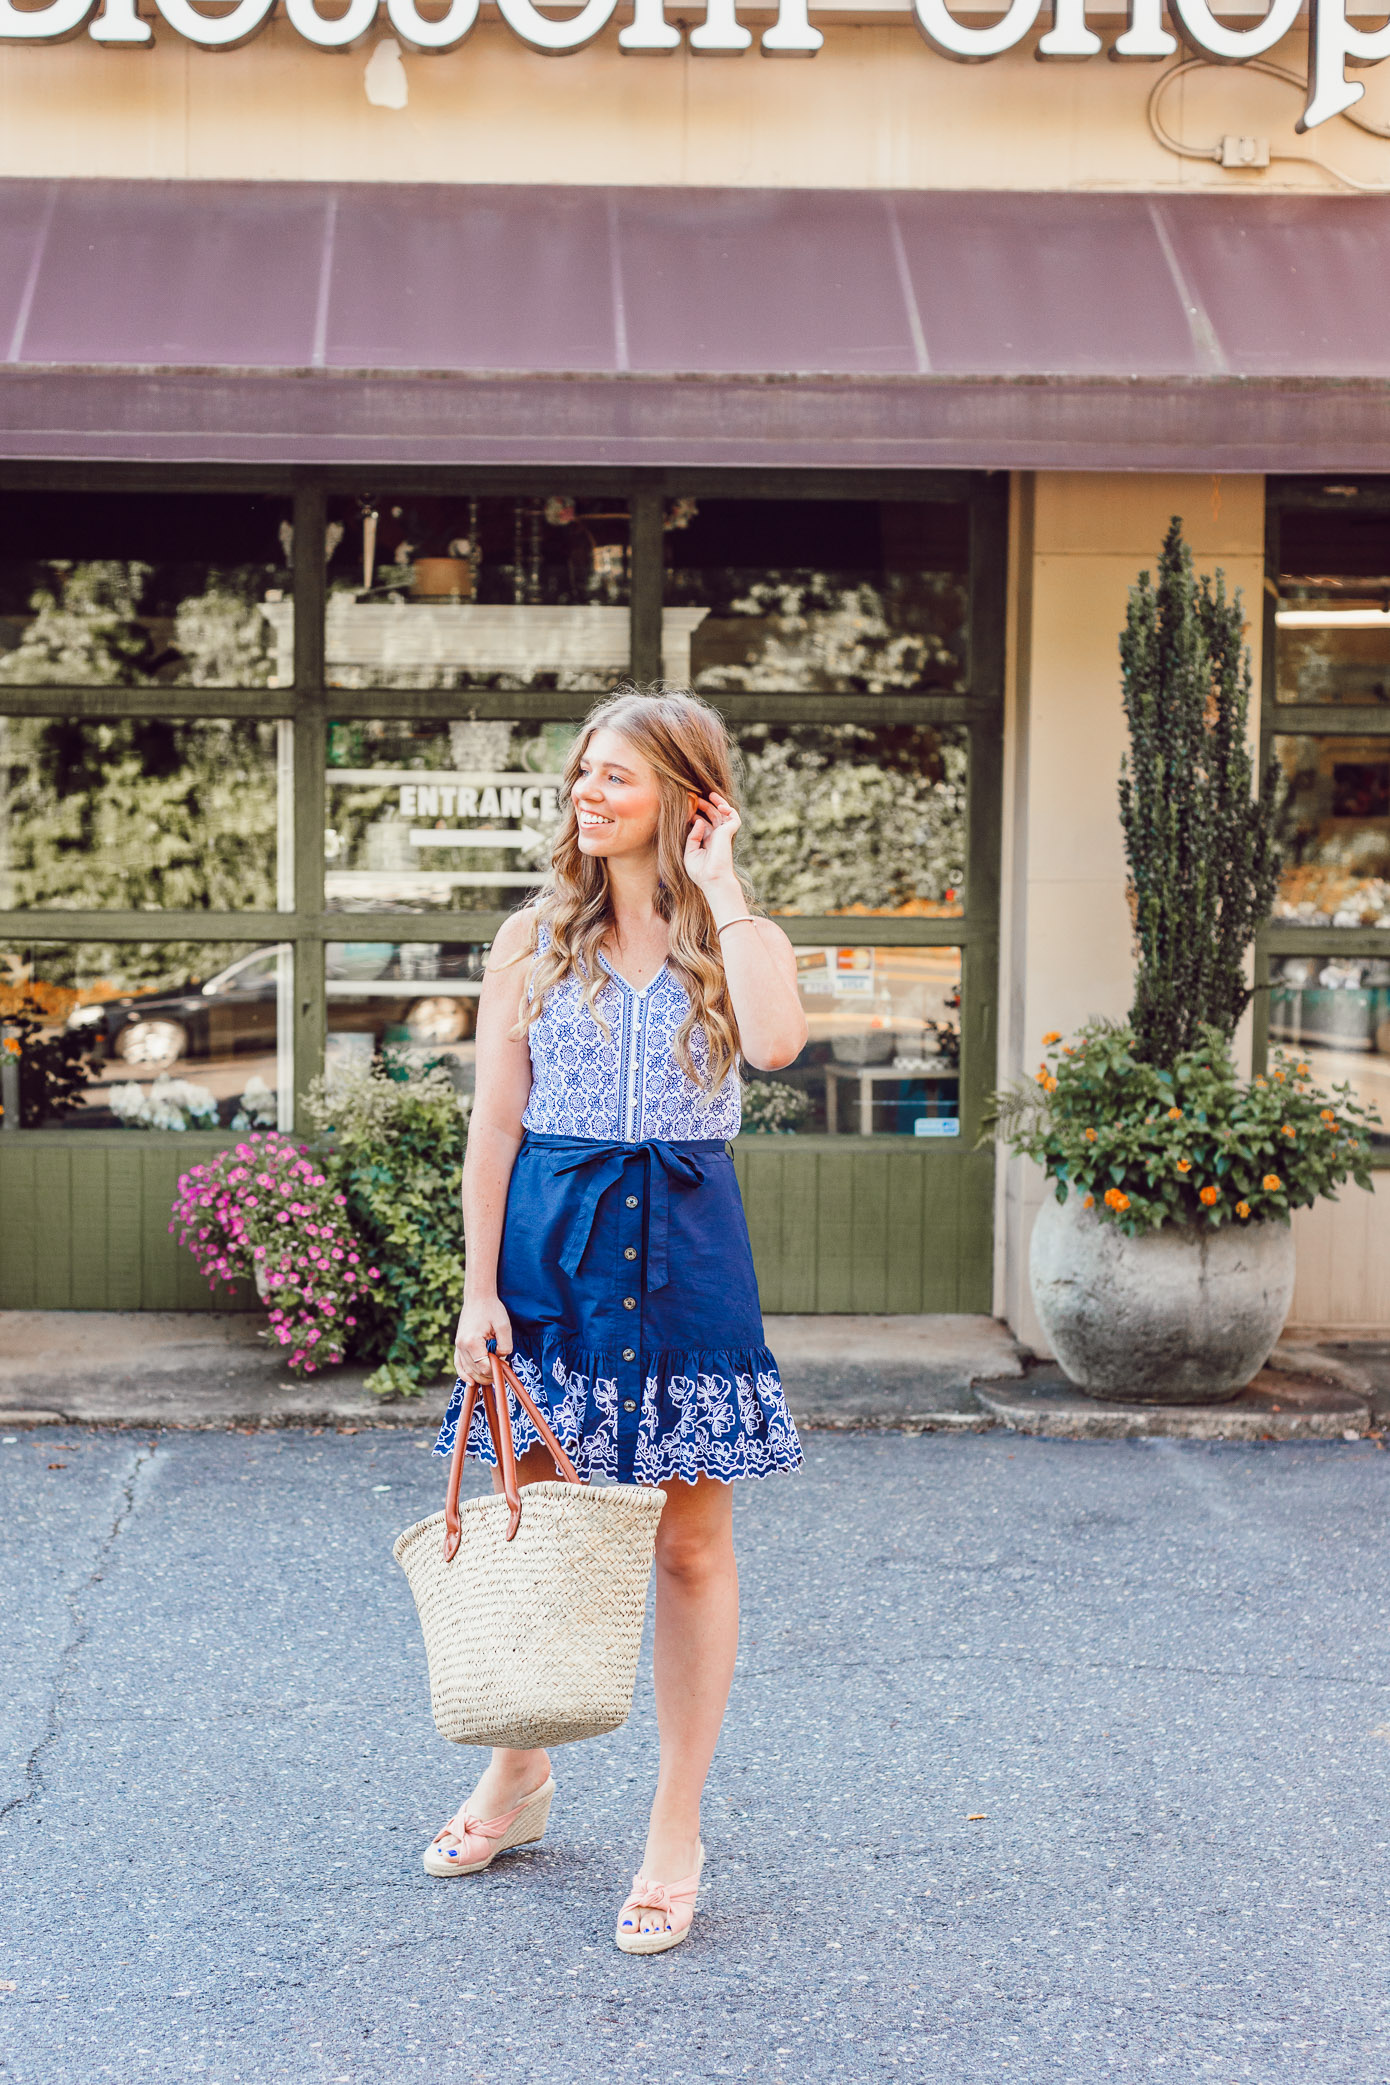 Summer Blues: Favorite Blue and White Pieces for Summer | Navy Embroidered Skirt styled on Louella Reese